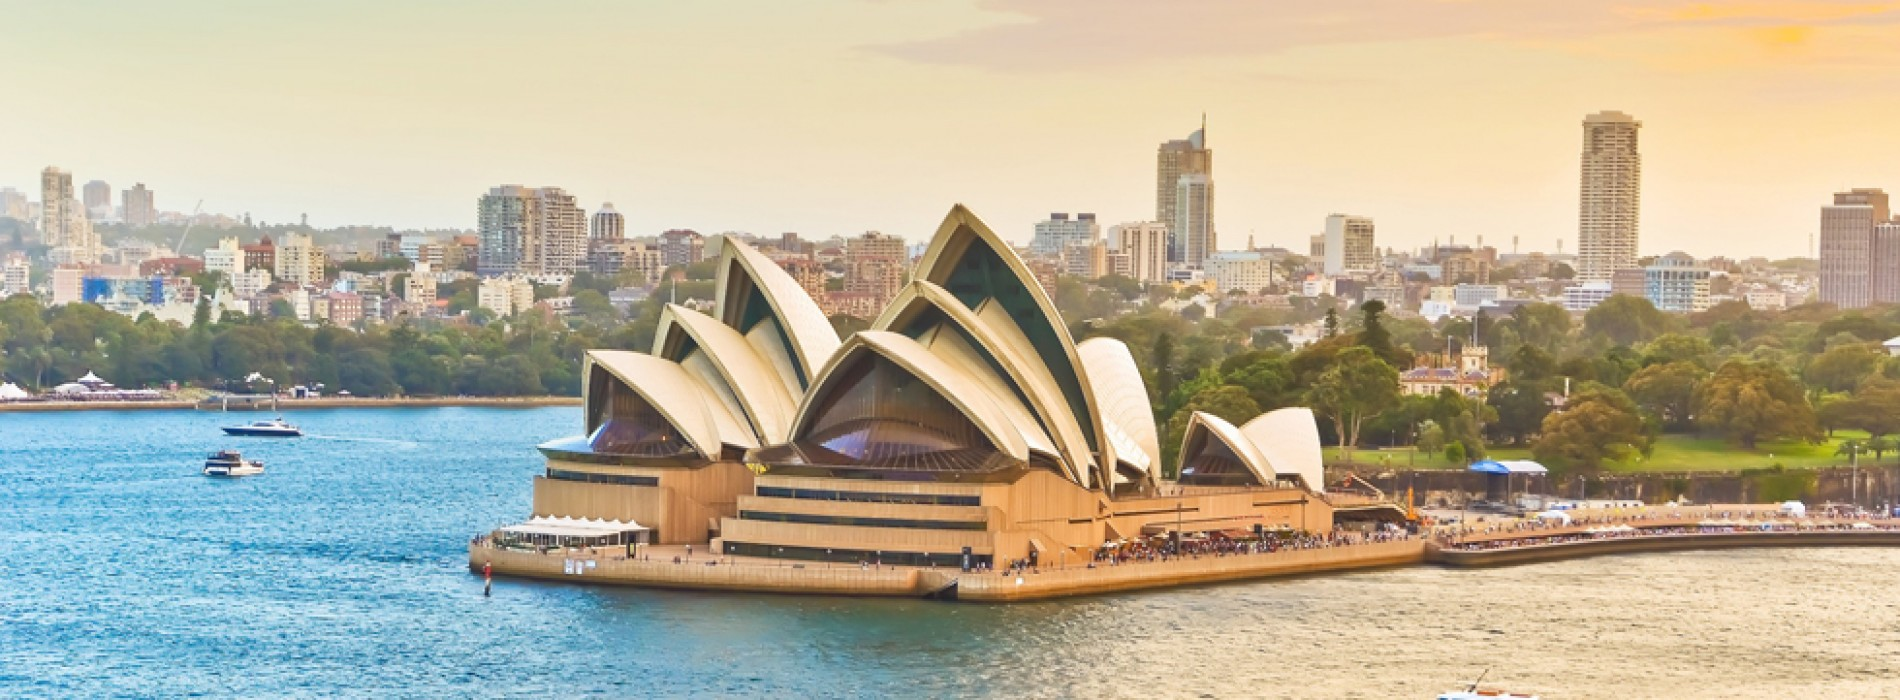 Australia and New Zealand: going down under in the Land of the Kiwis!